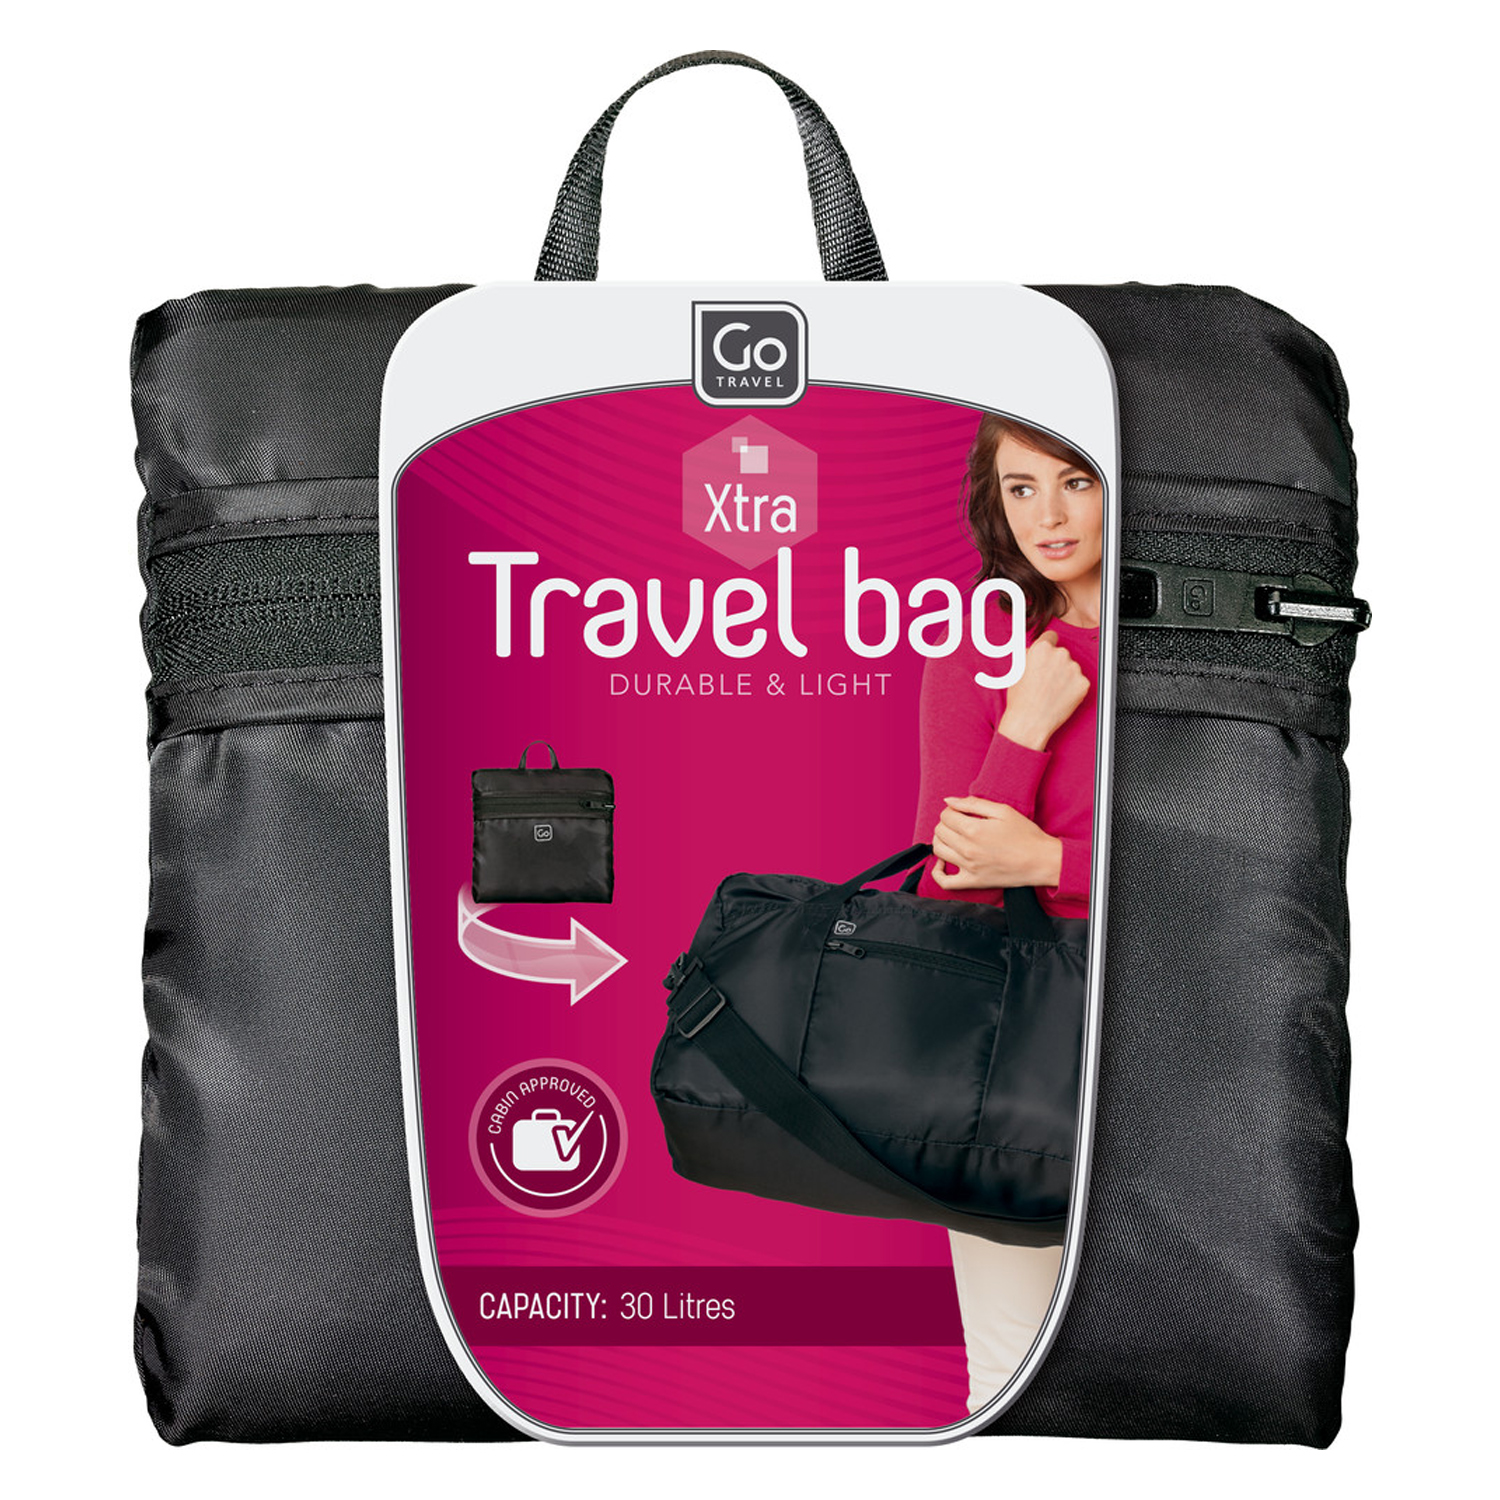 1684789f57fb Go Travel Travel Bag Xtra (Black)